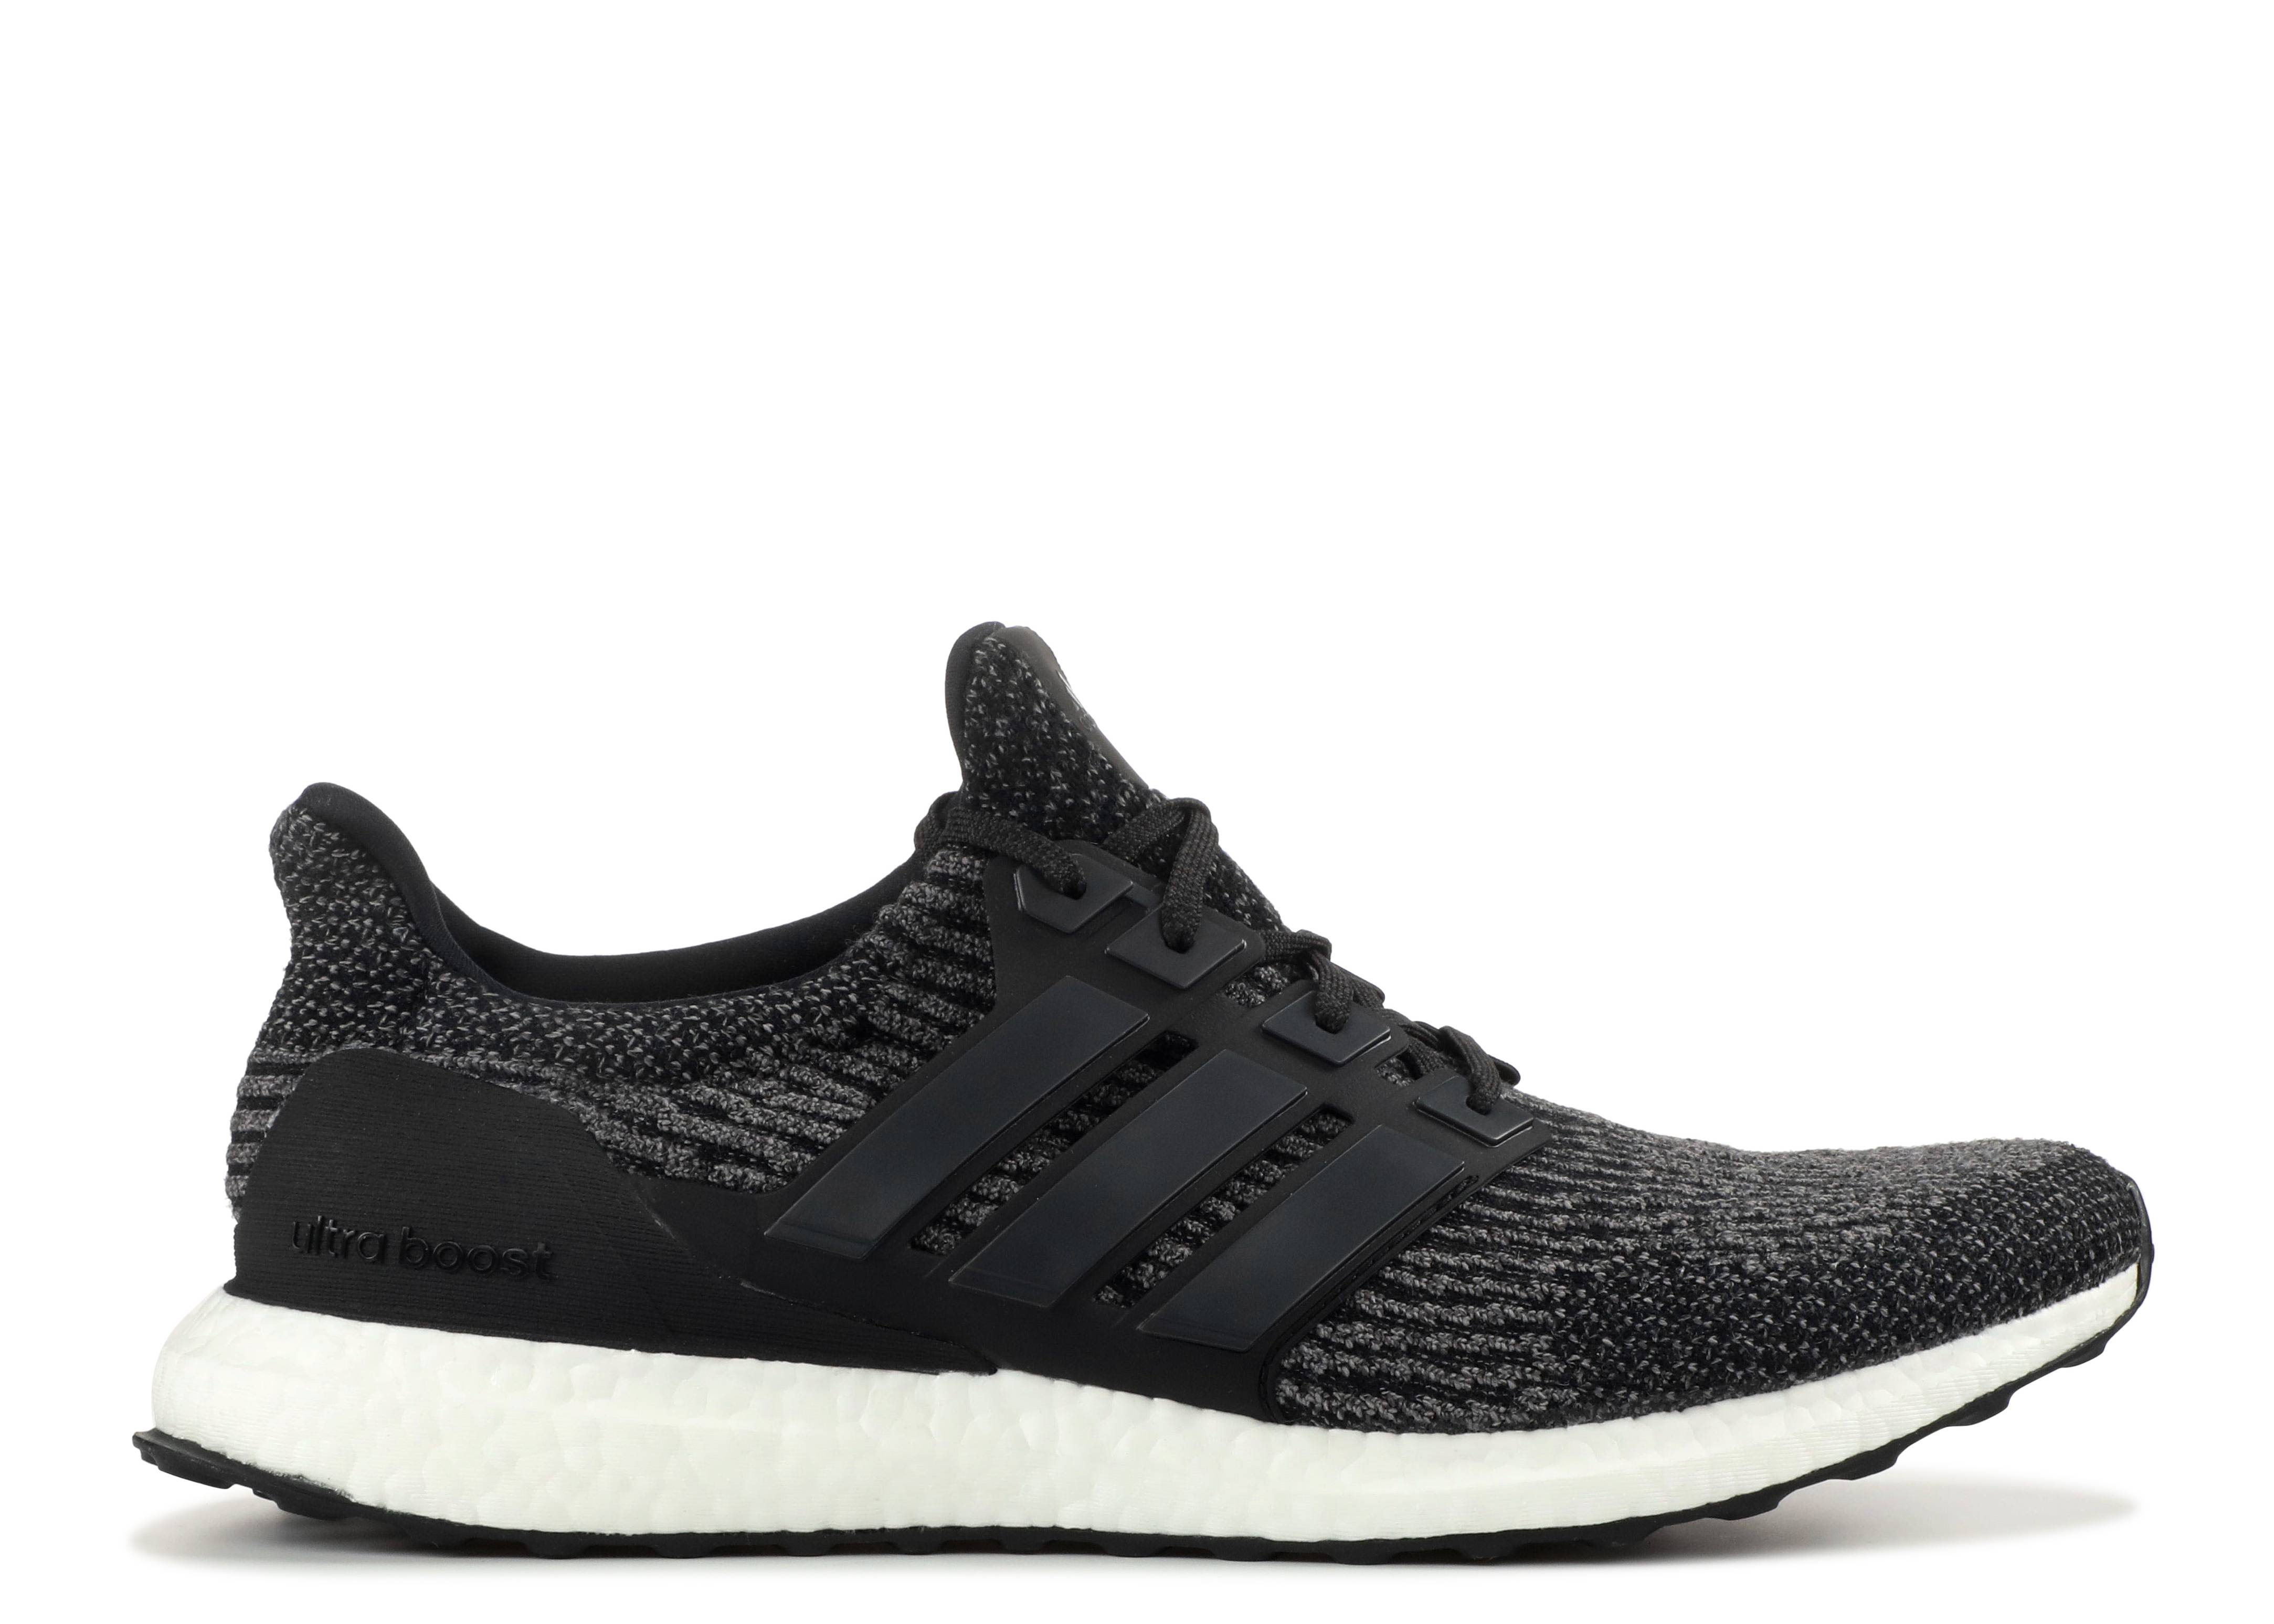 reputable site c9b88 9fc13 adidas. UltraBOOST